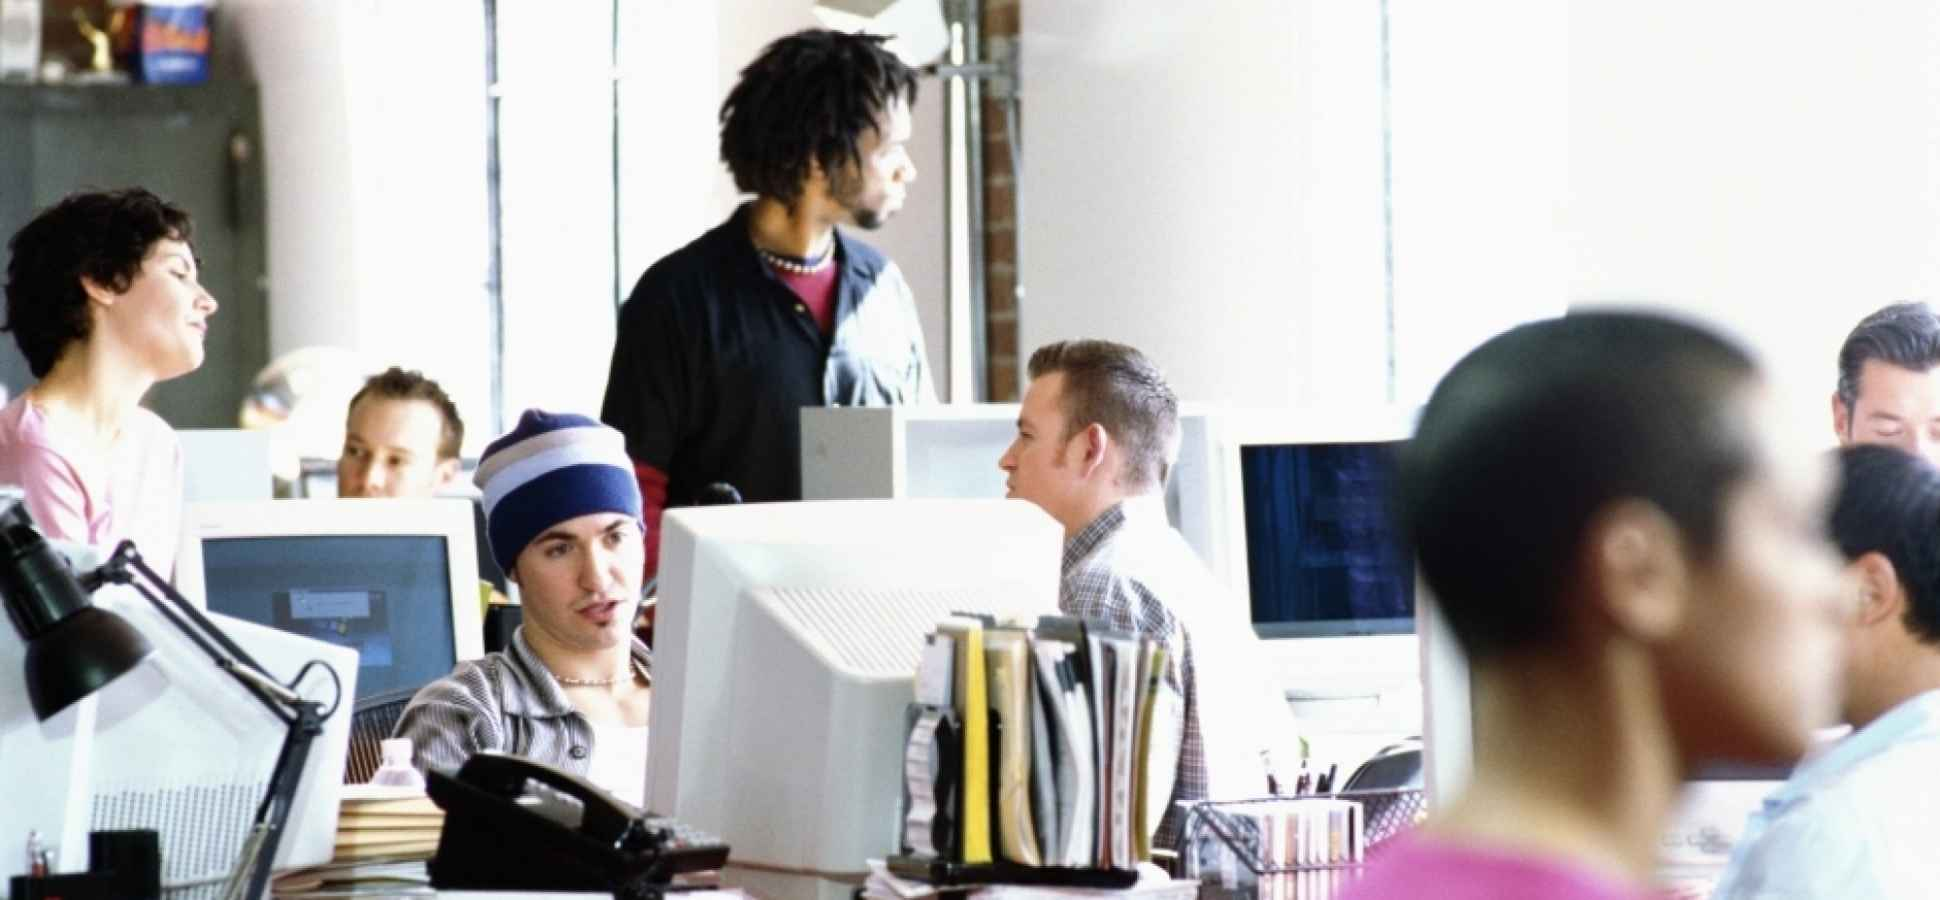 5 Things Business Leaders Can Learn From Today's Developers | Inc com